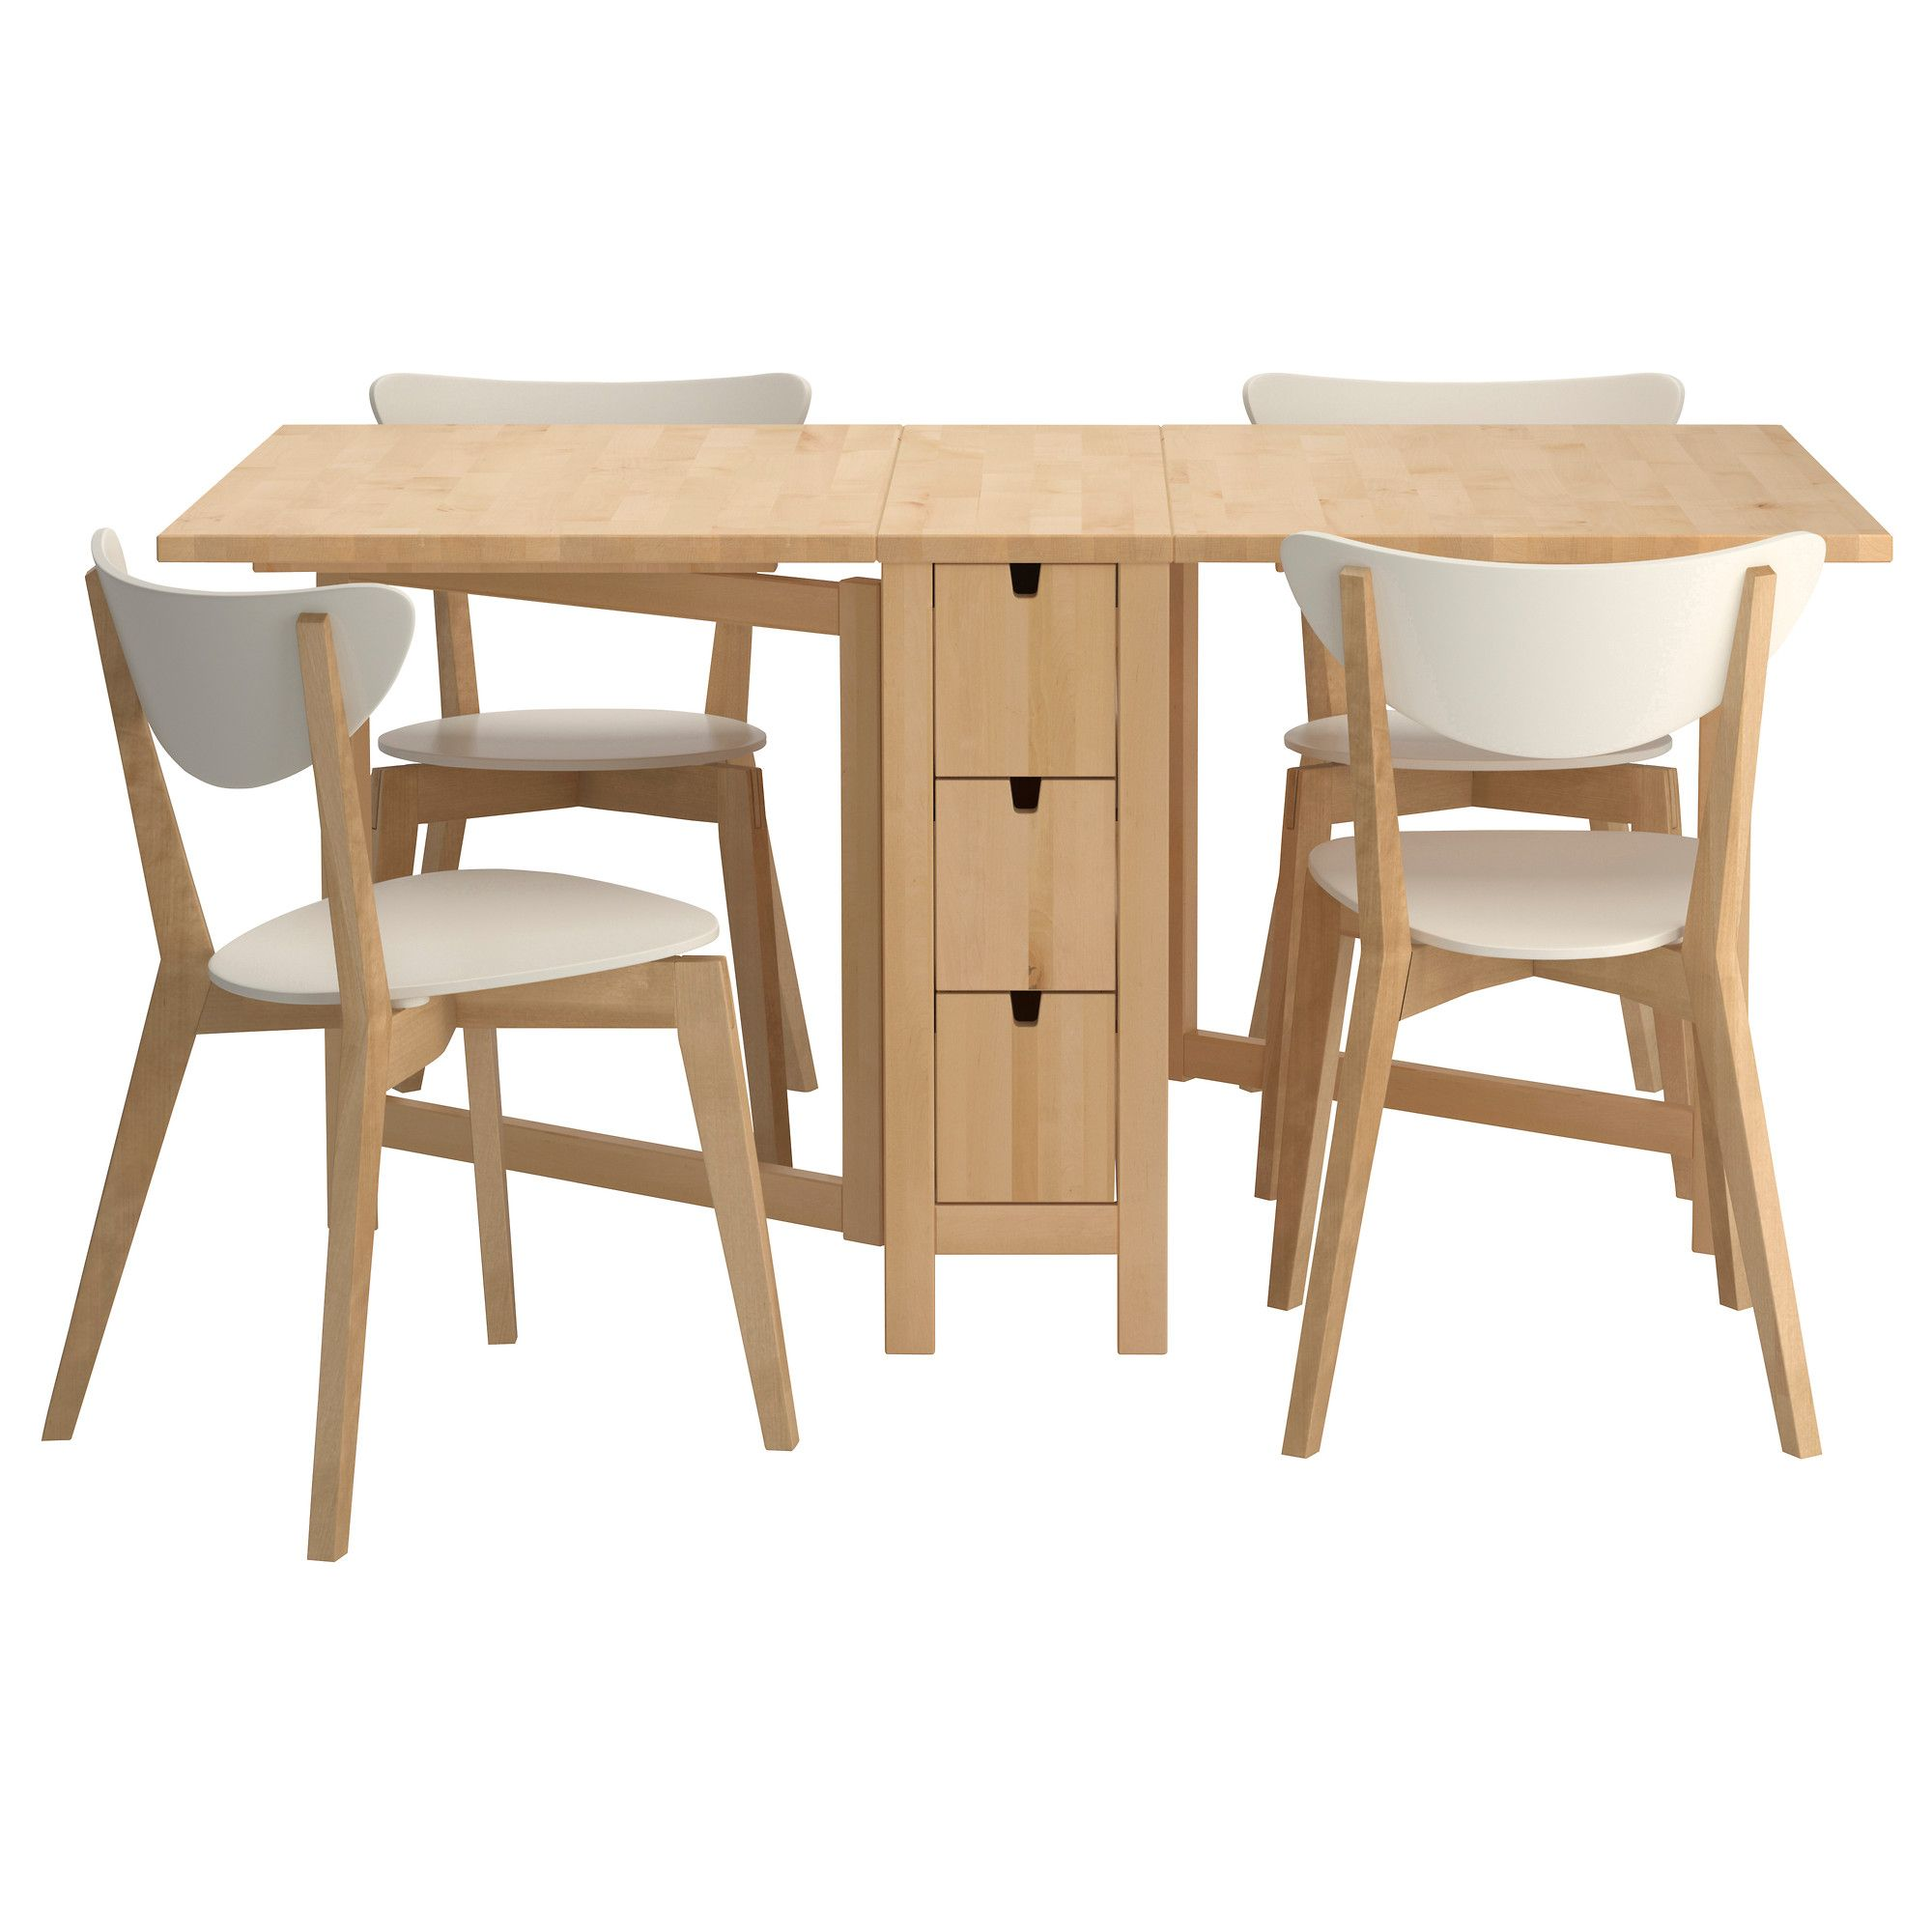 Norden nordmyra table and 4 chairs ikea for the love for Kitchen and dining room chairs